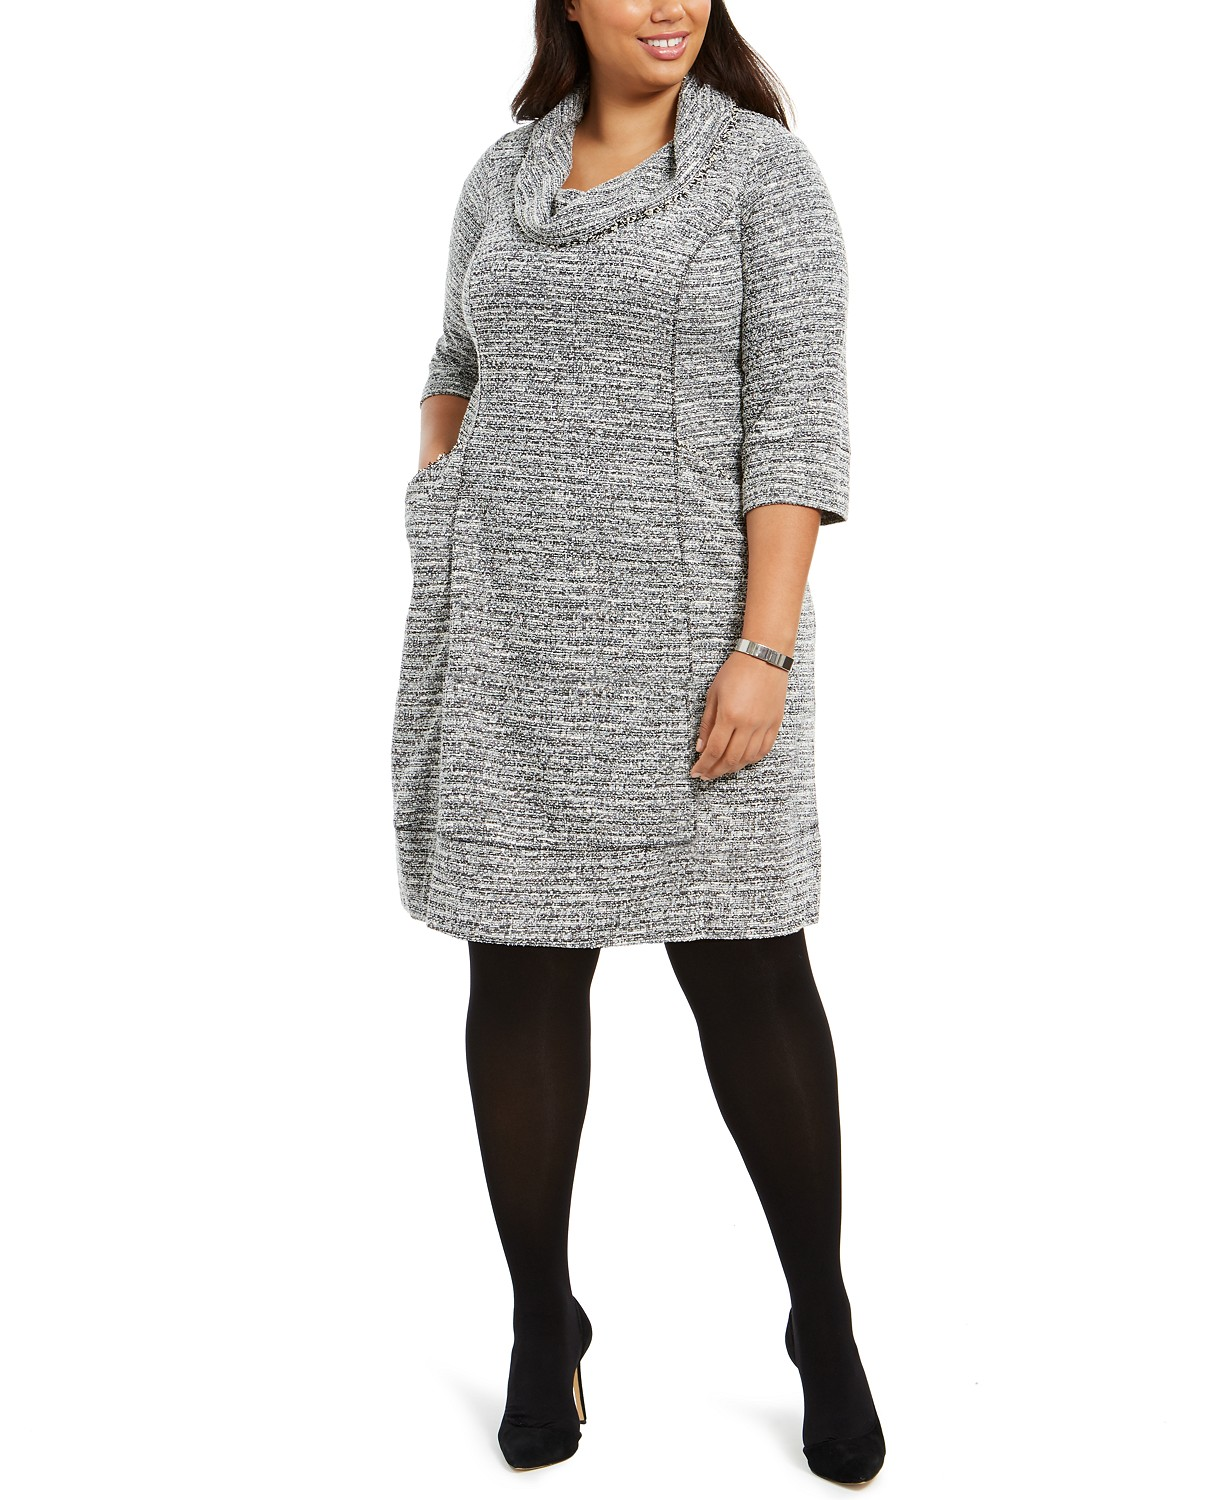 Plus Size Cowlneck Sweater Dress